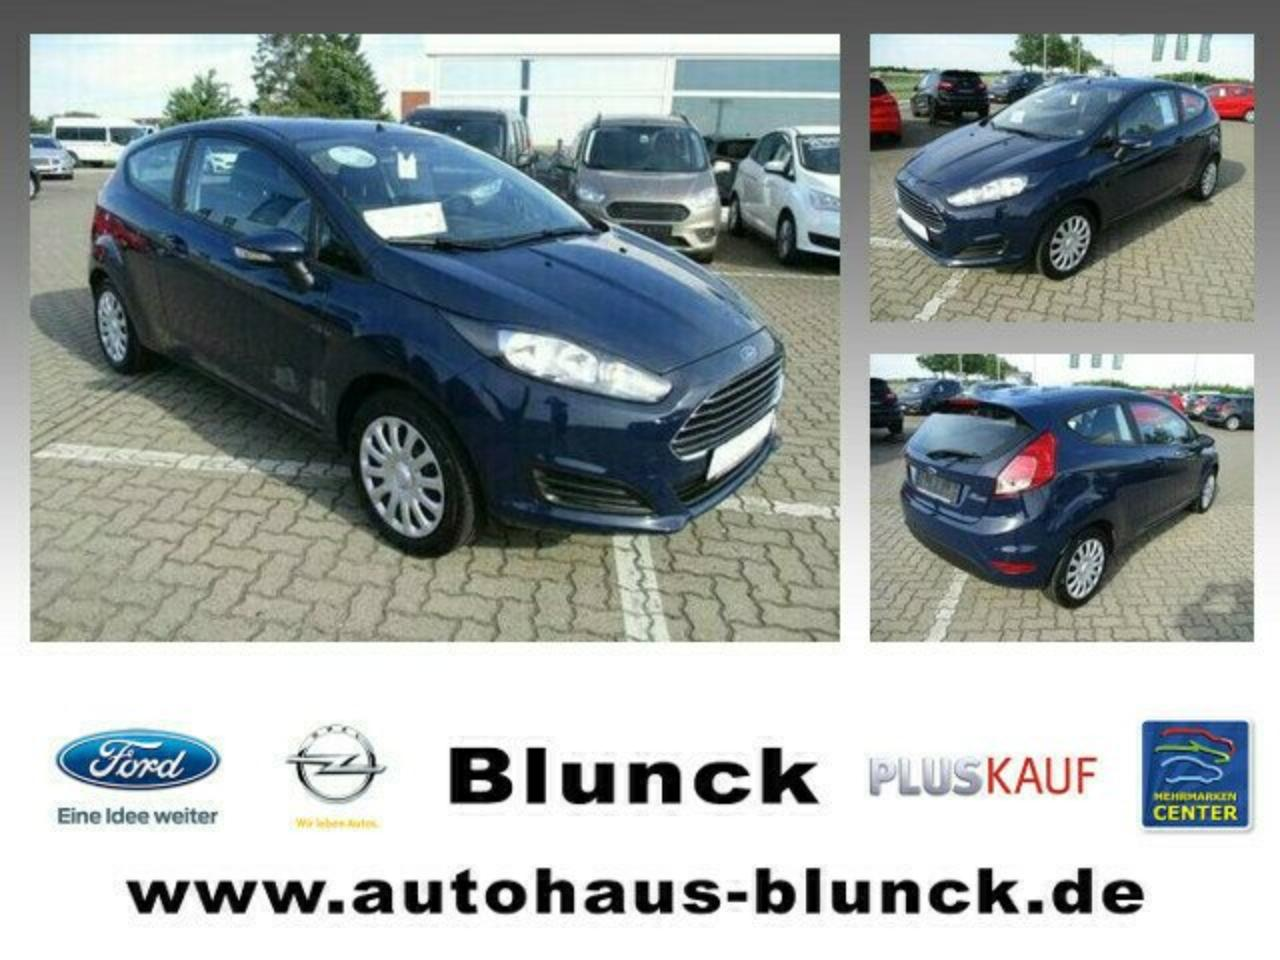 Ford Fiesta TREND 3-turig 60 PS